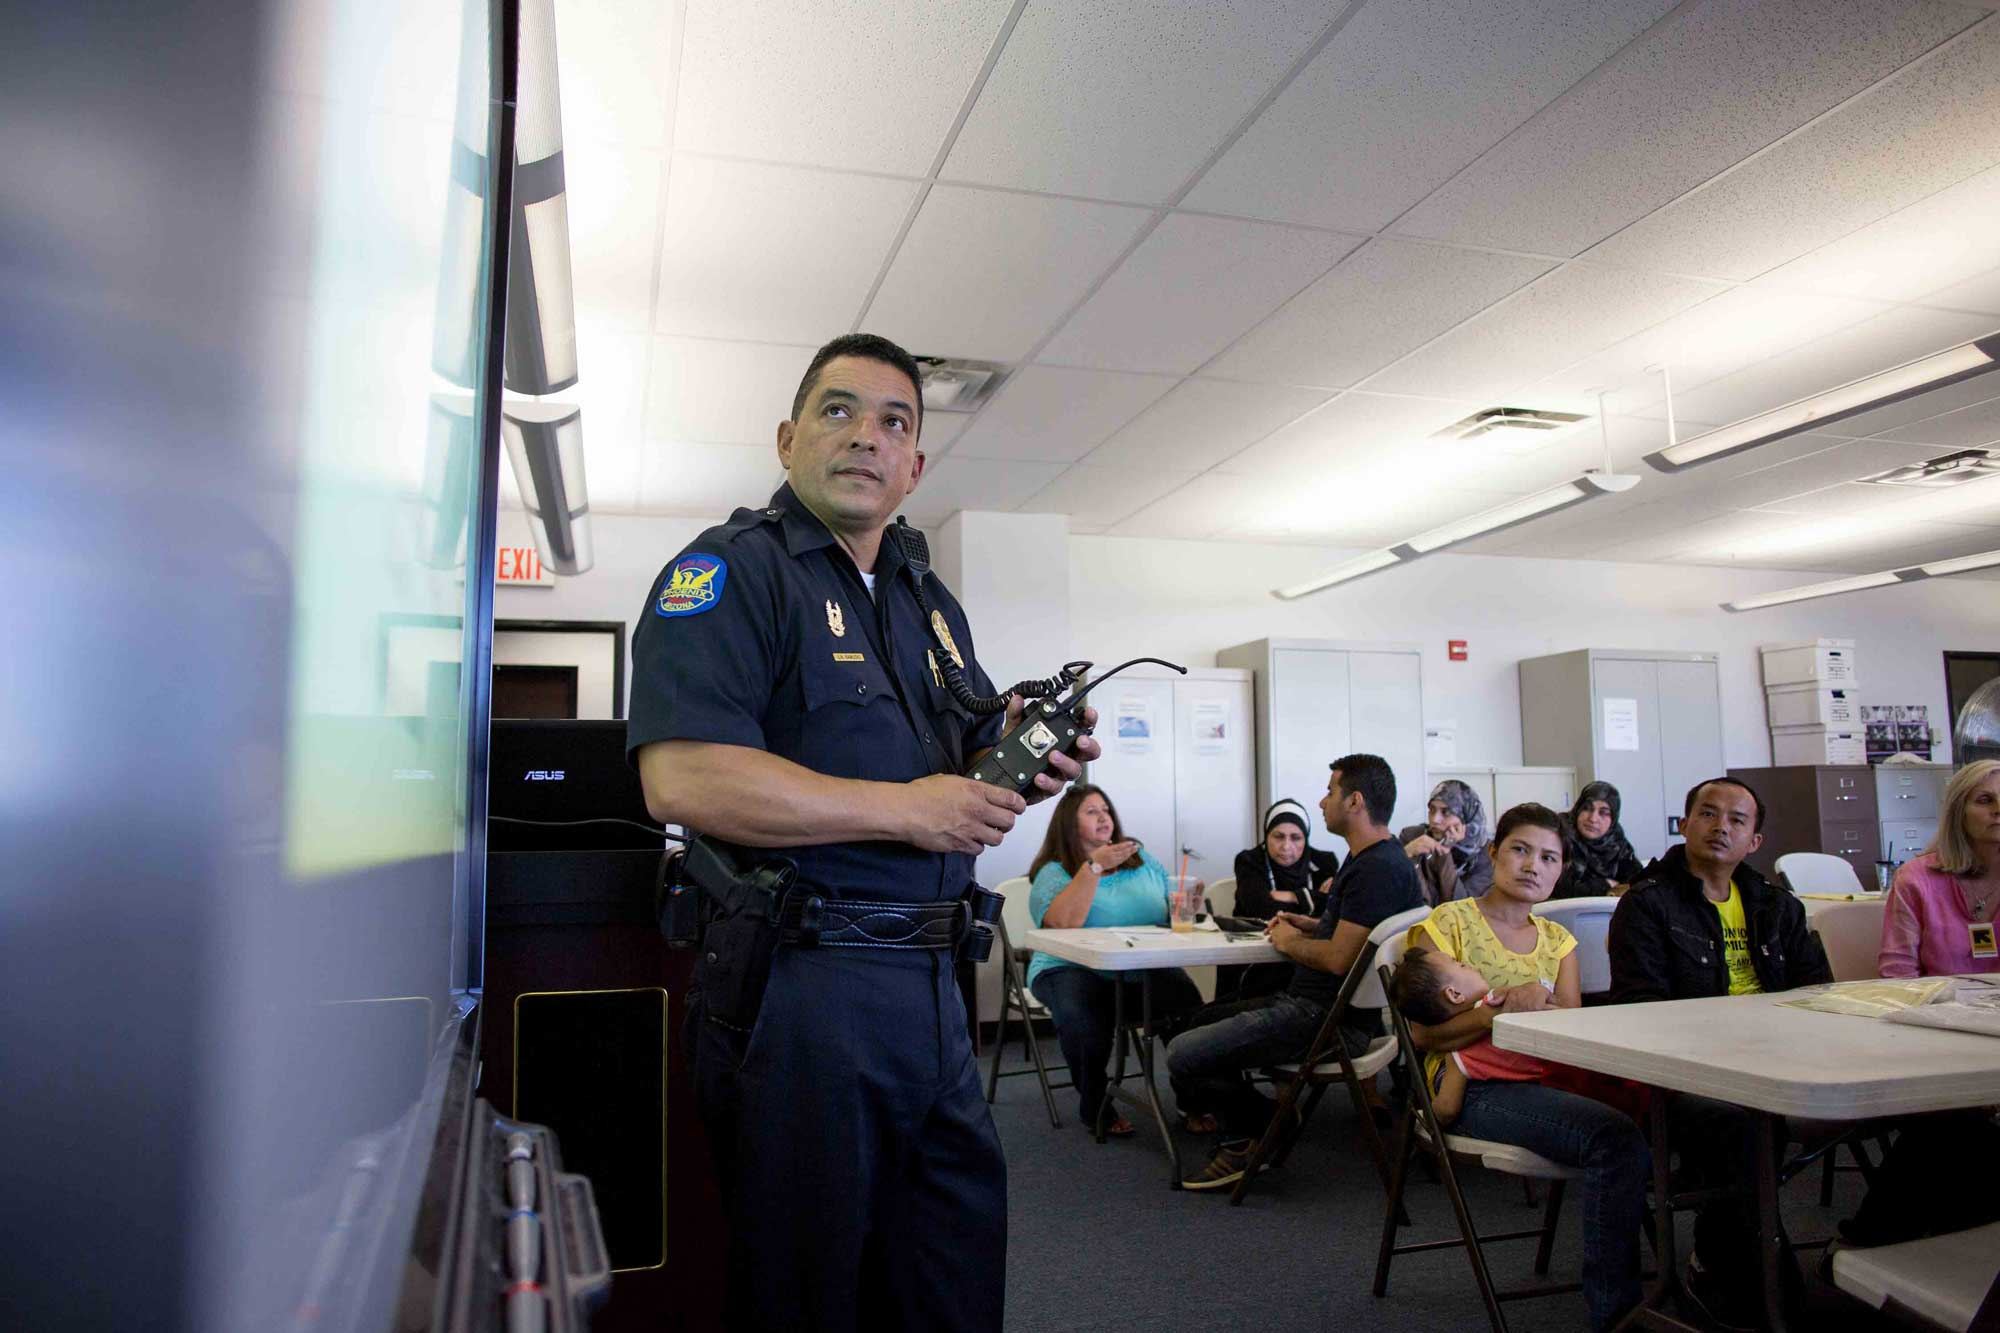 Police officer leading a refugee cultural adjustment class